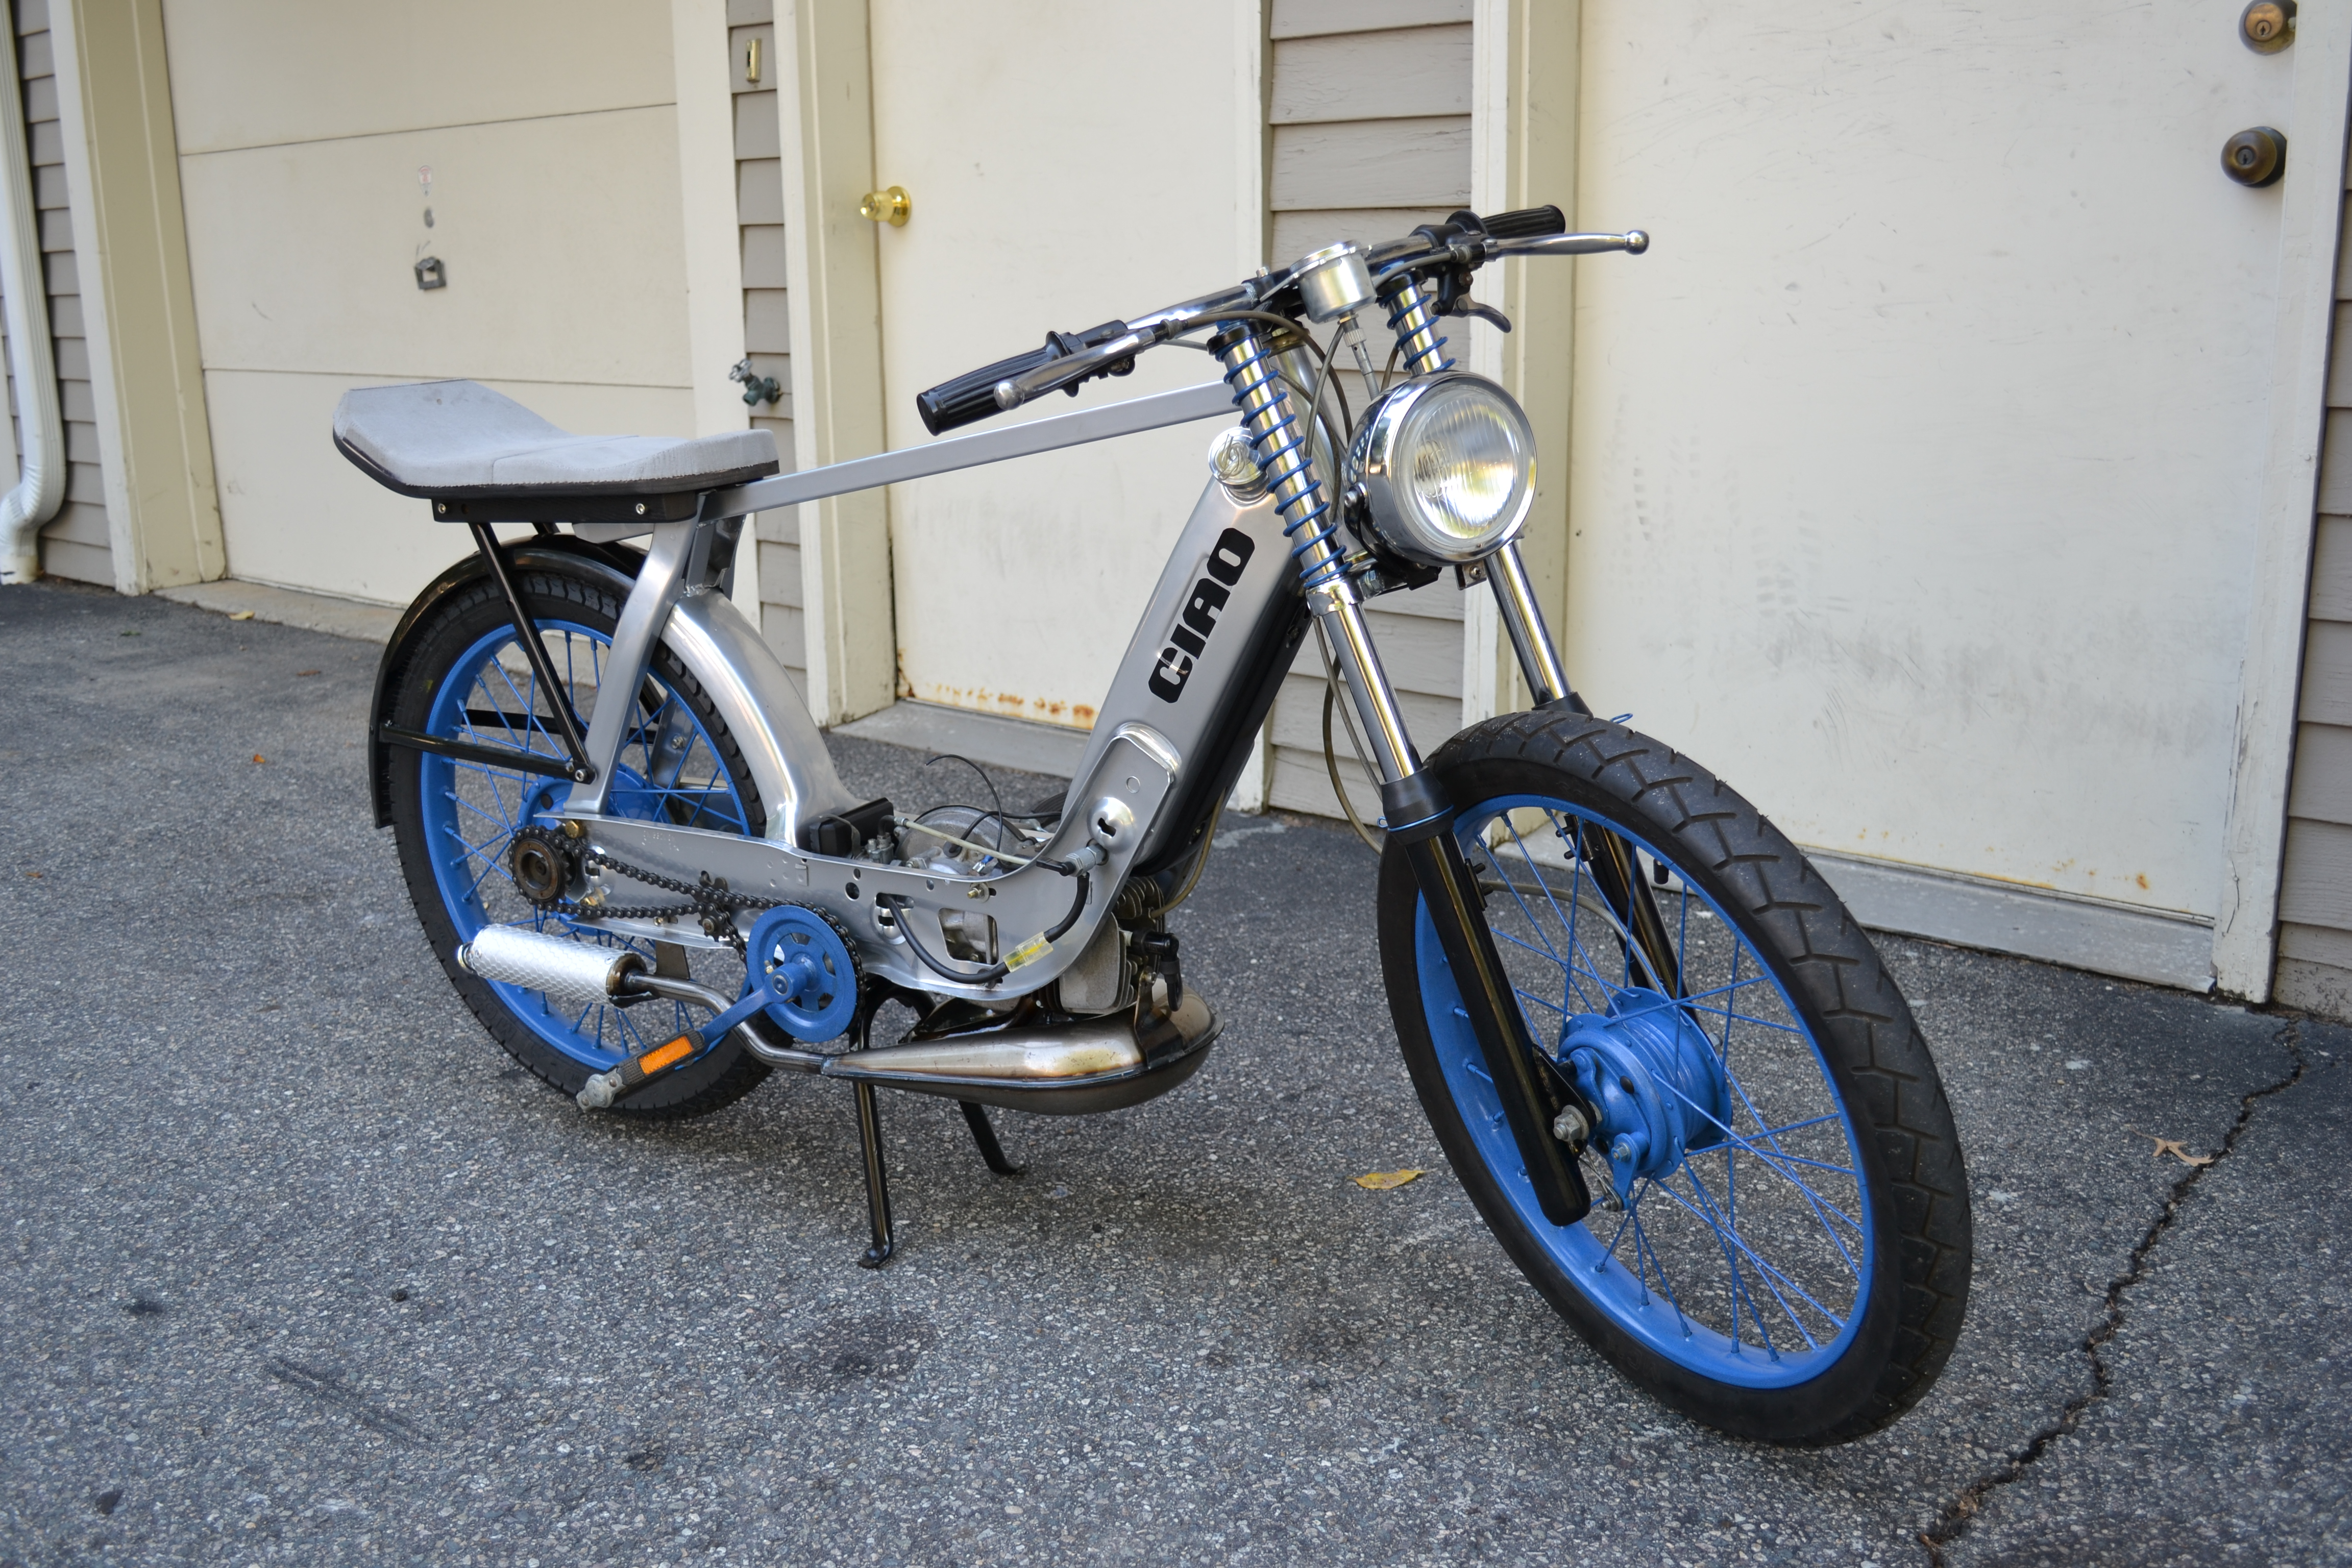 Trac moped 16